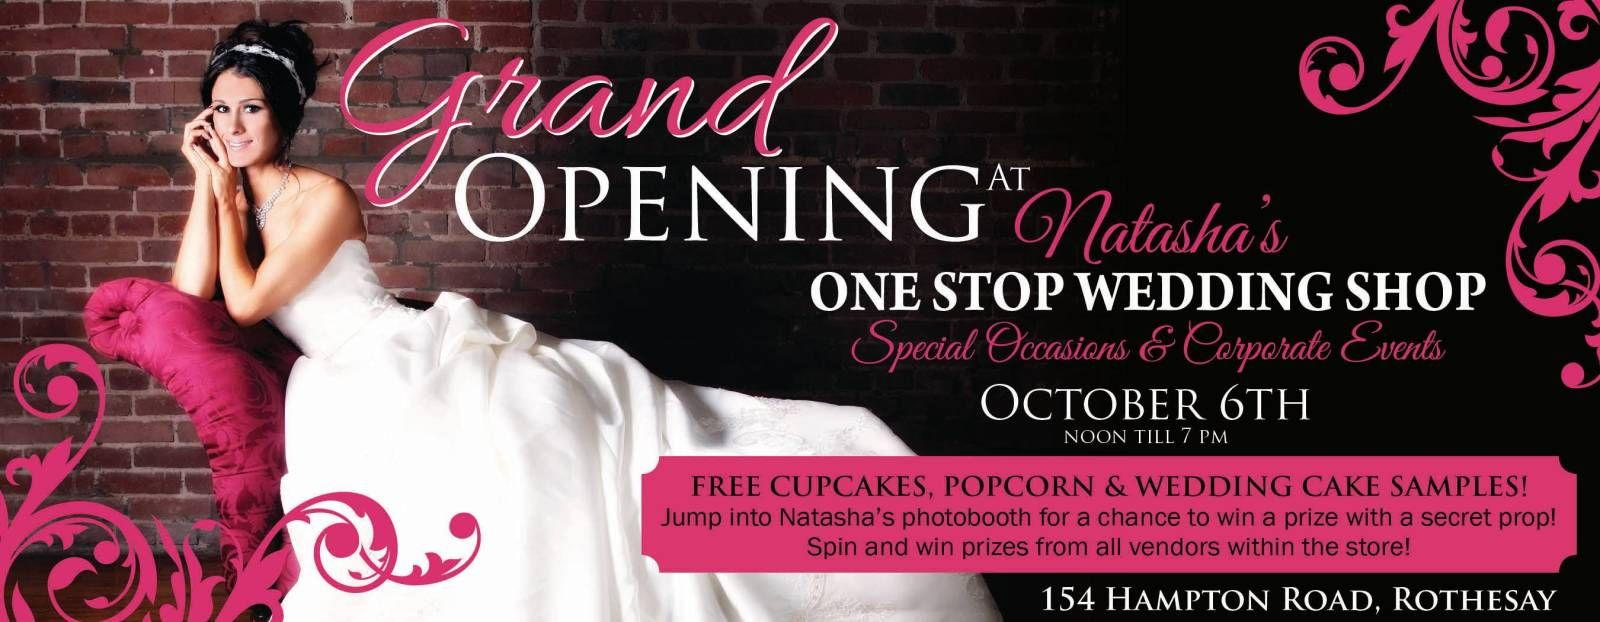 Join Us For Our Grand Opening Event October 6, 2013 at 154